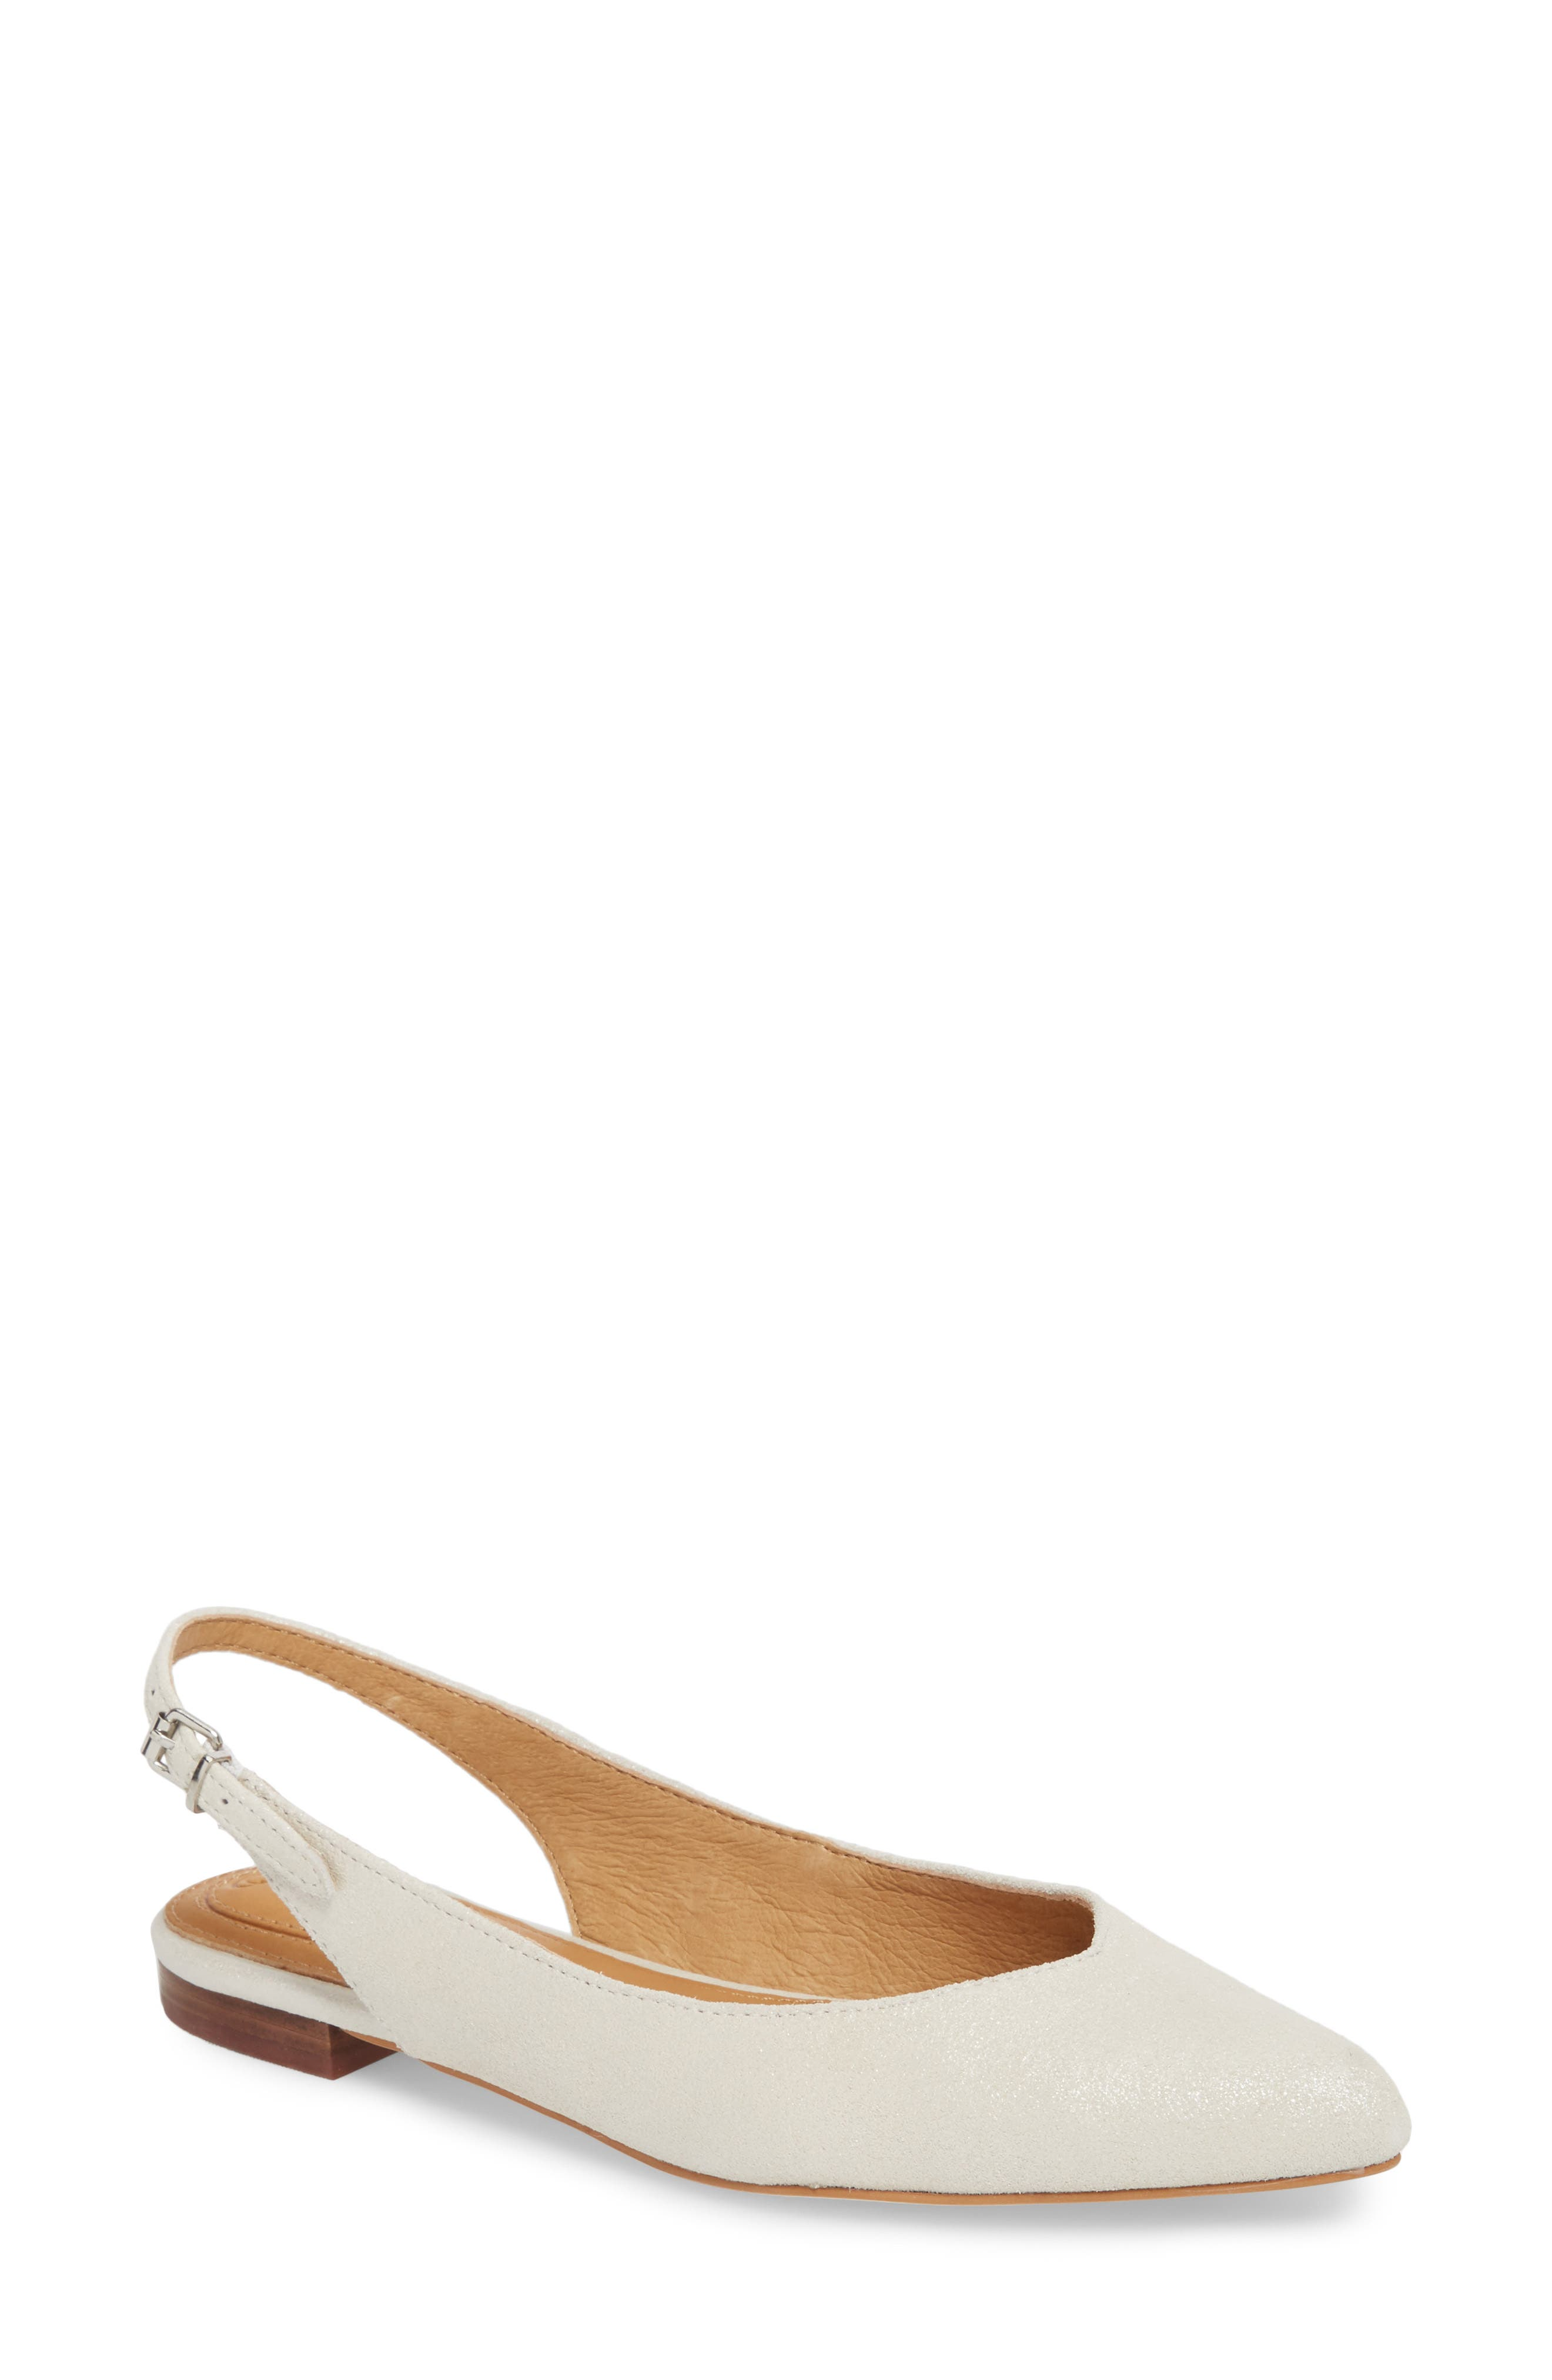 Jackey Slingback Flat,                         Main,                         color, PLATINUM LEATHER